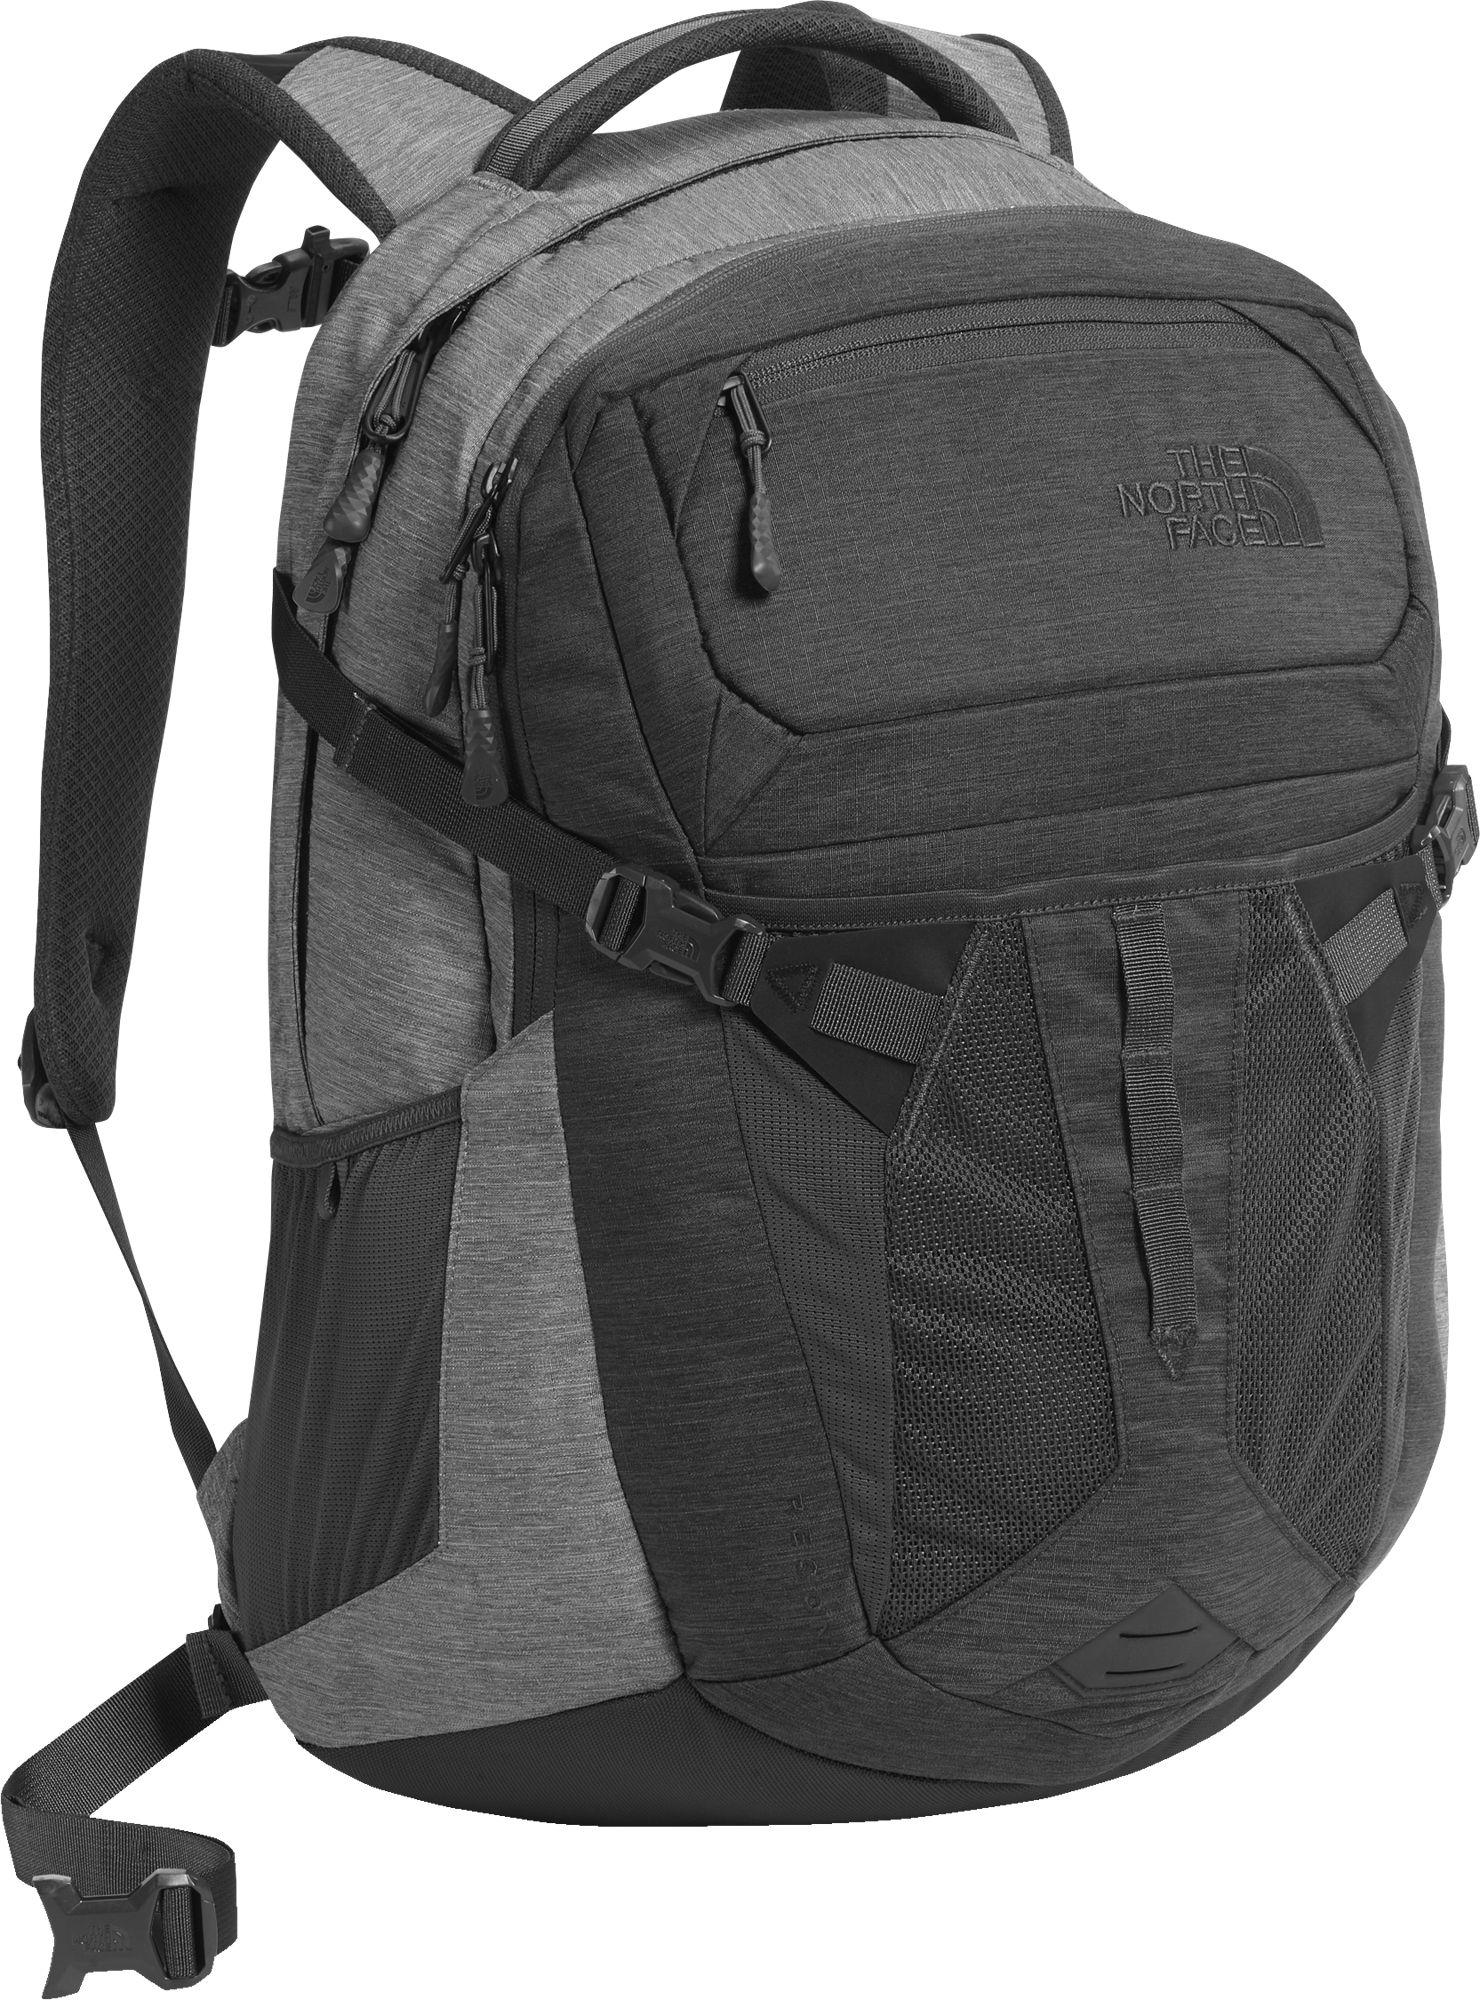 8481b1e82cb Lyst - The North Face Recon Backpack in Gray for Men